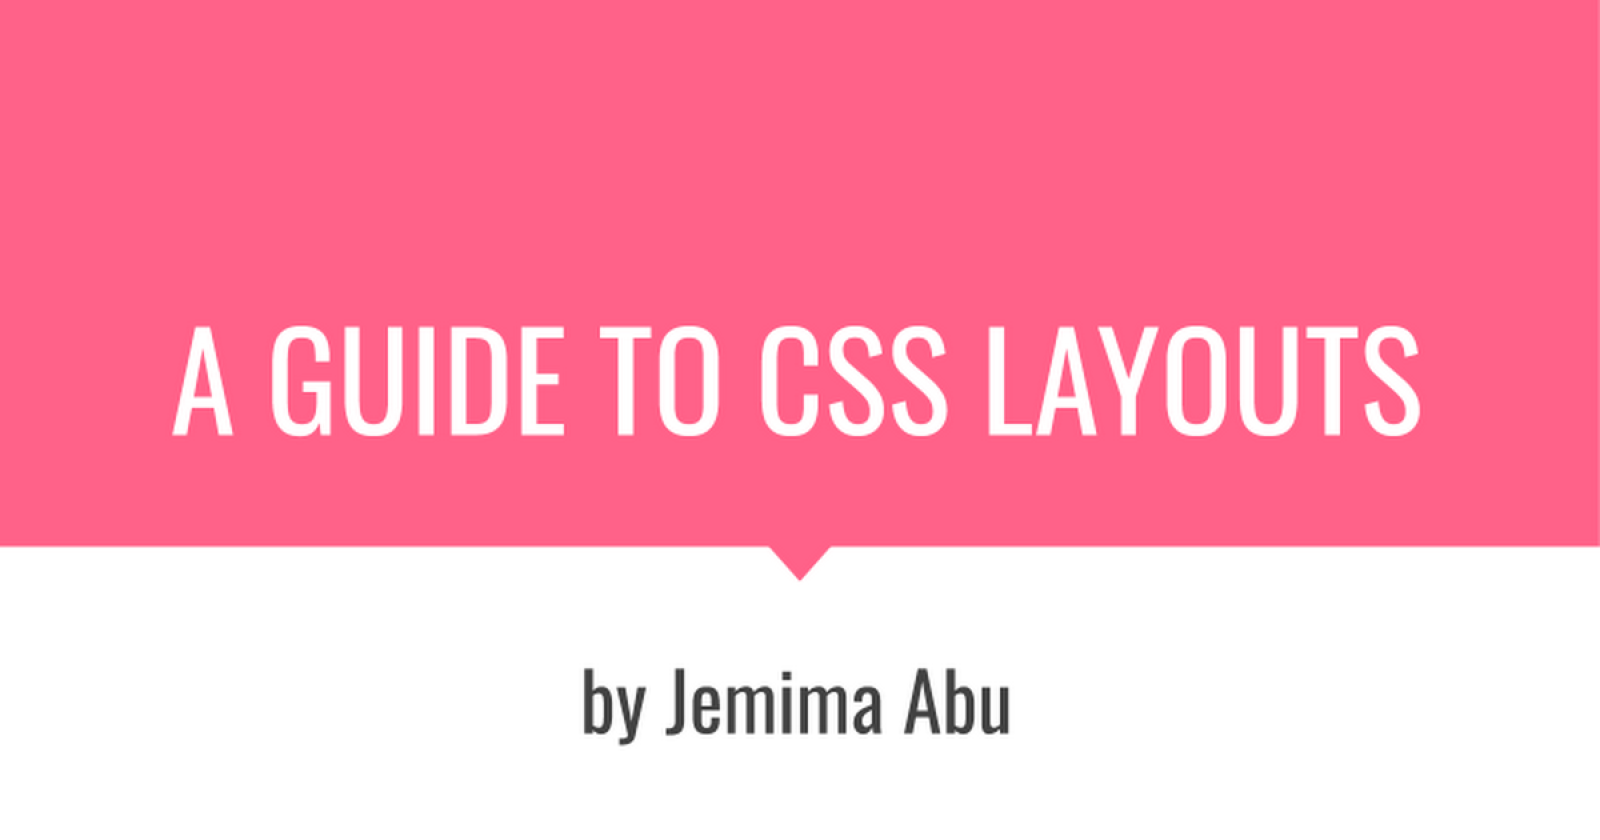 A Guide To CSS Layouts